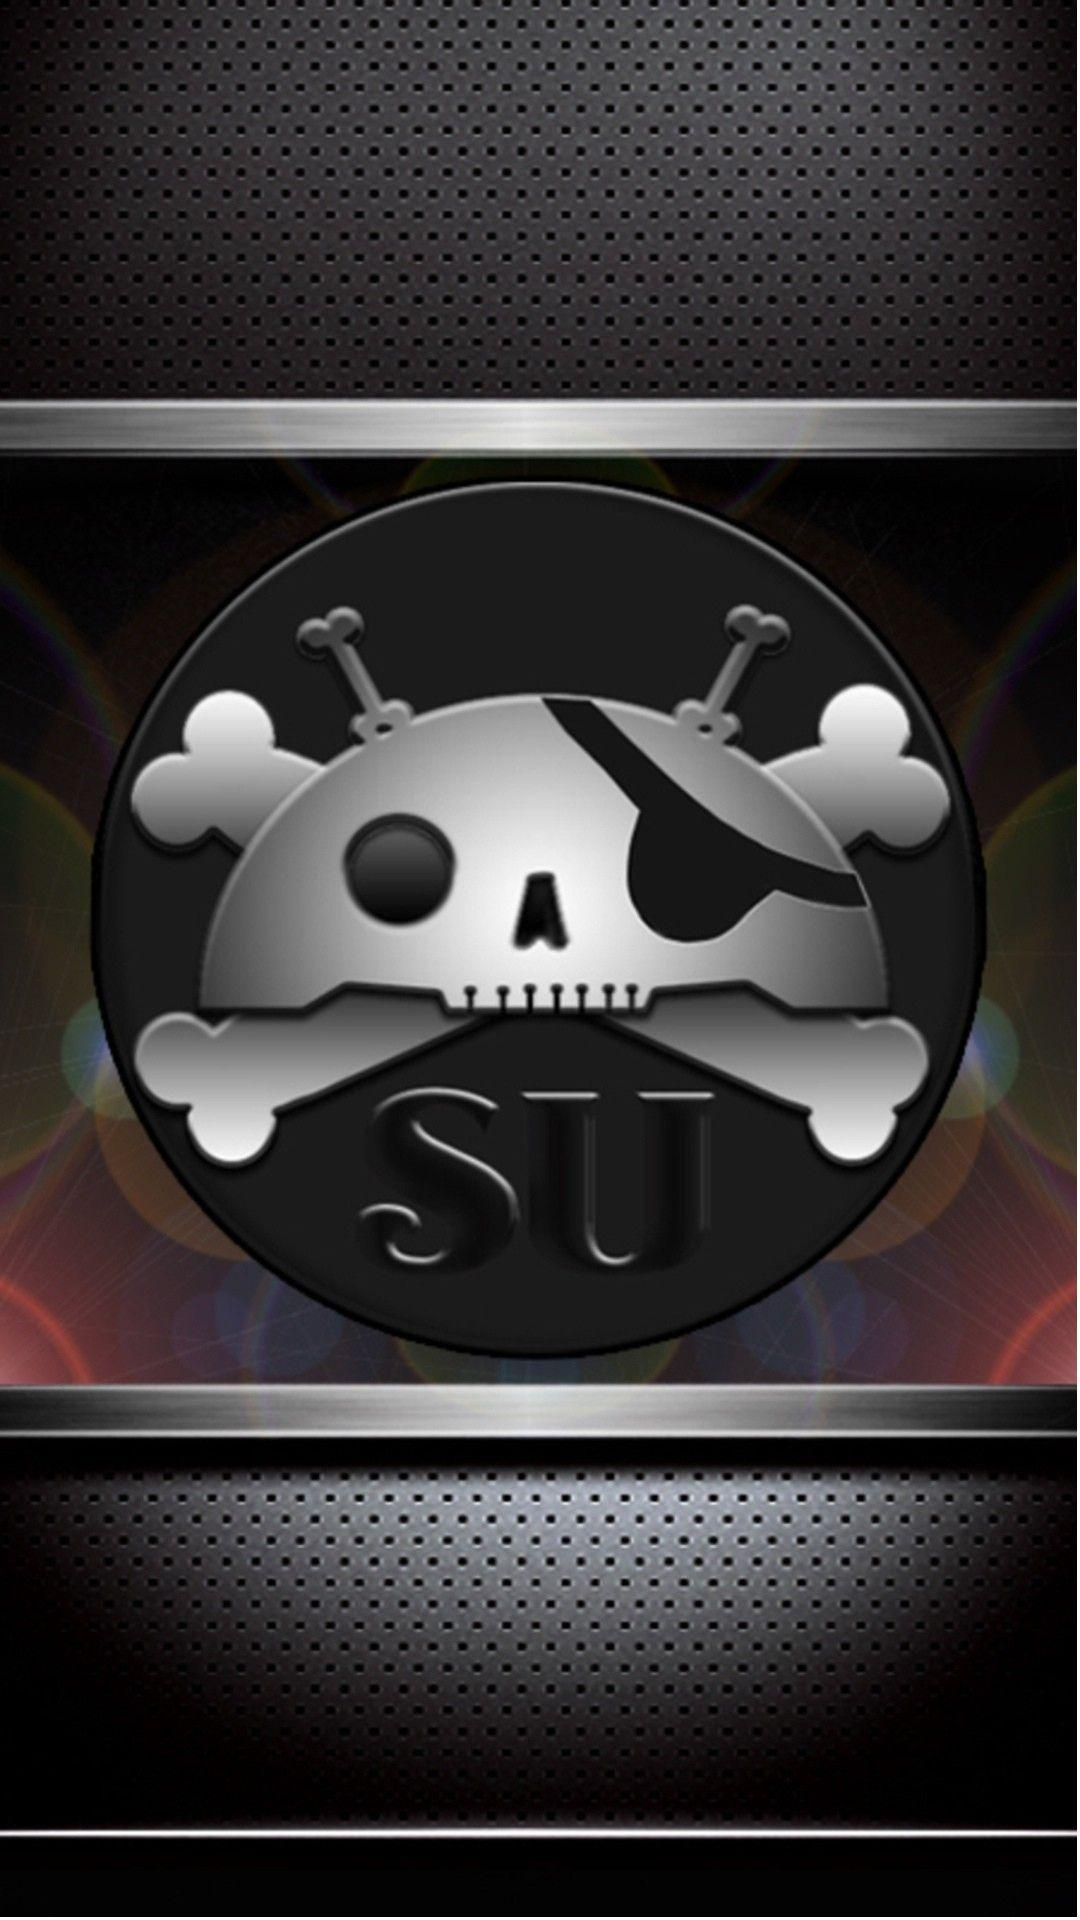 Android Phone Skull Wallpapers - Wallpaper Cave